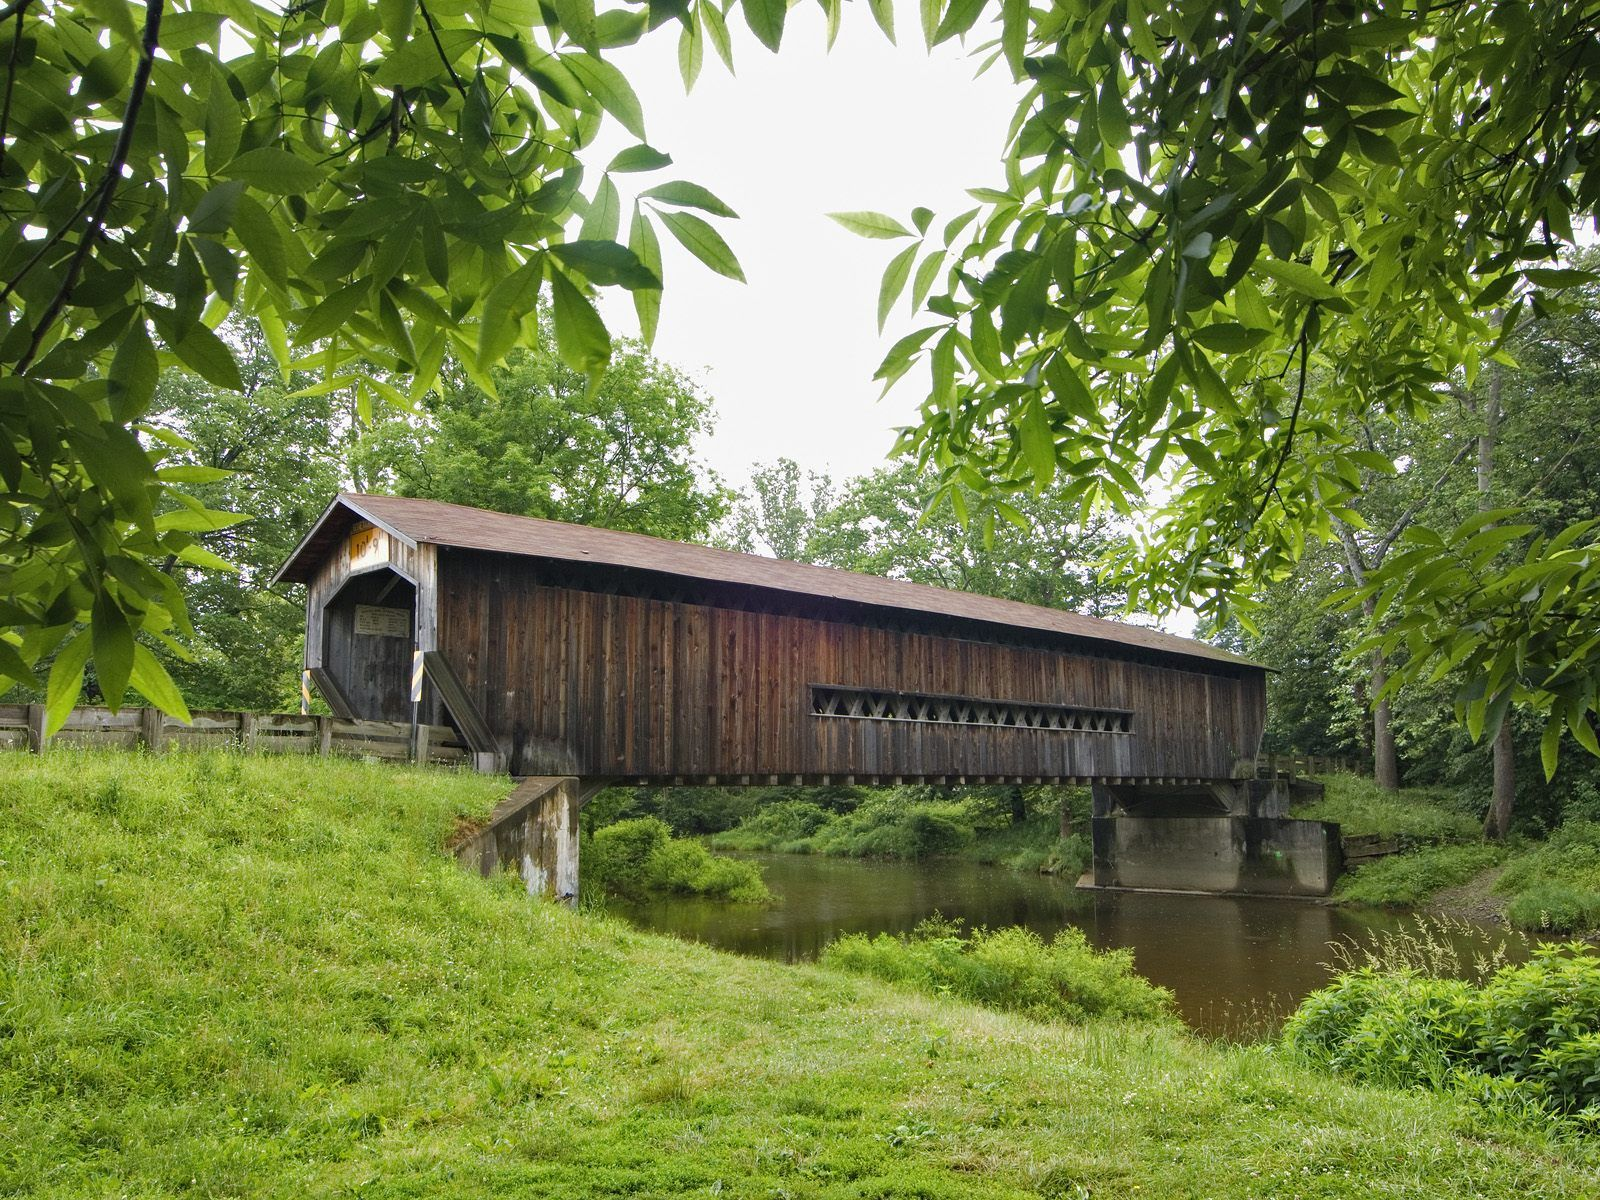 benetka_road_covered_bridge_ashtabula_county_ohio